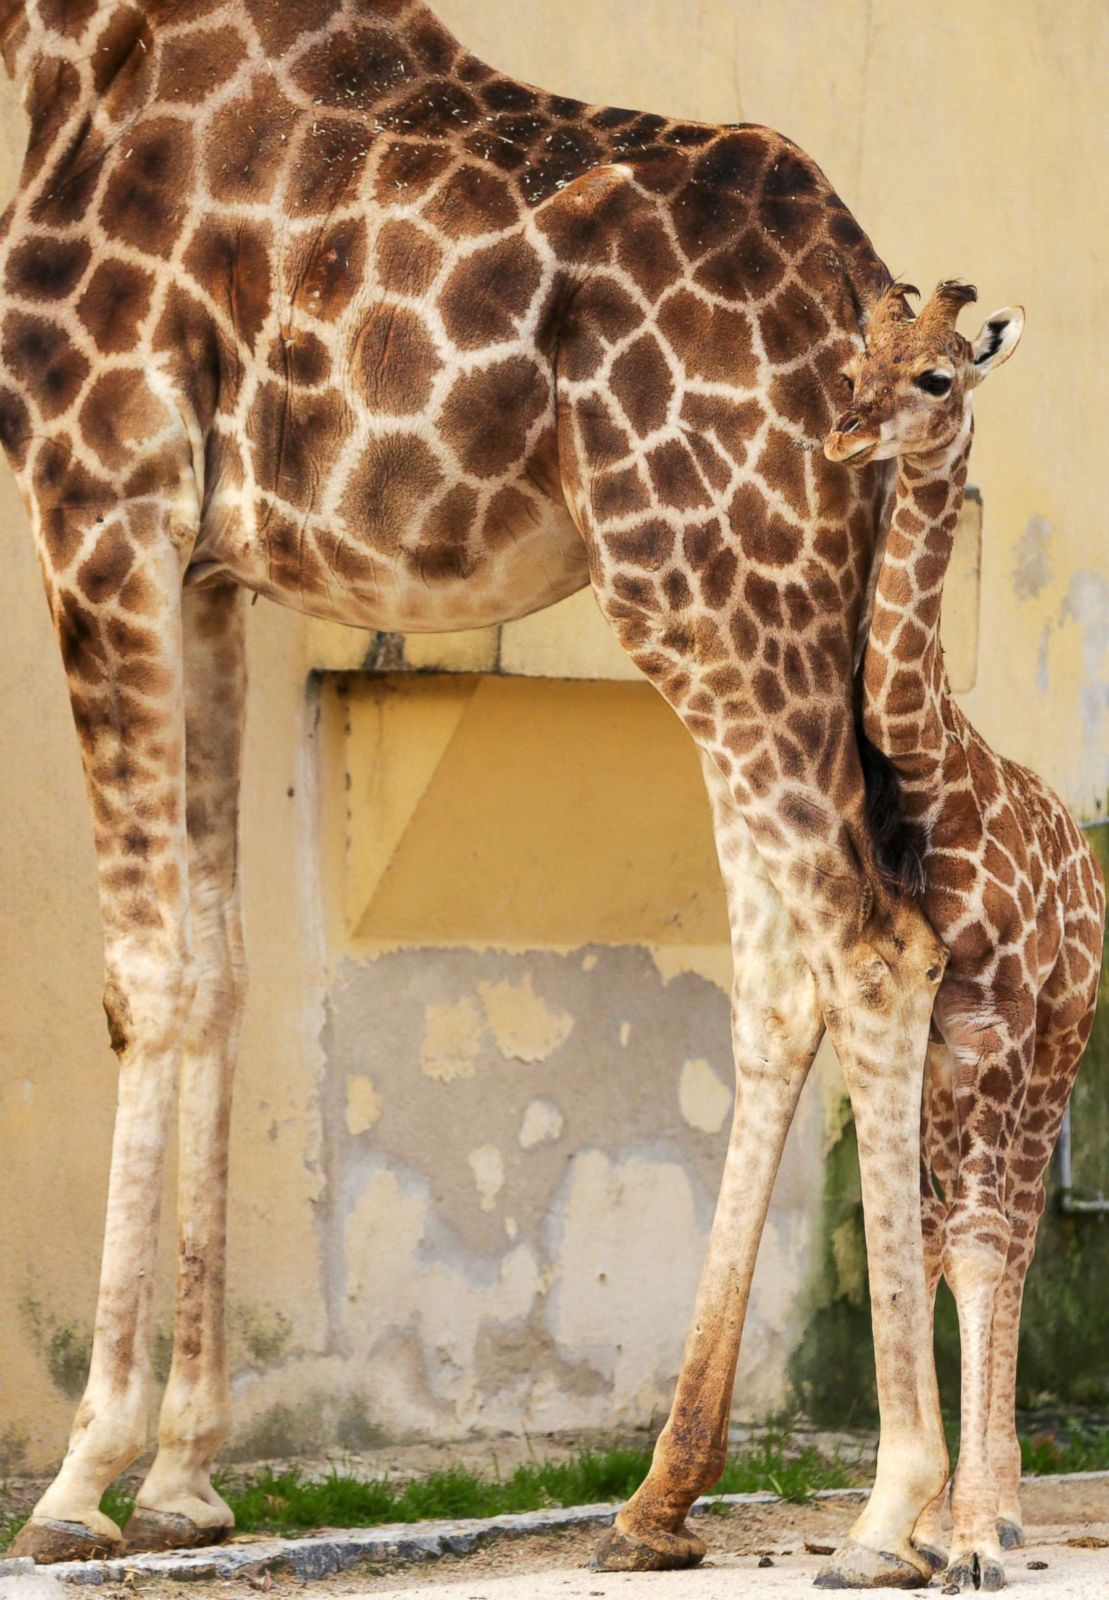 Theatrotherapy: childrens tears, sick kitten and dad-giraffe